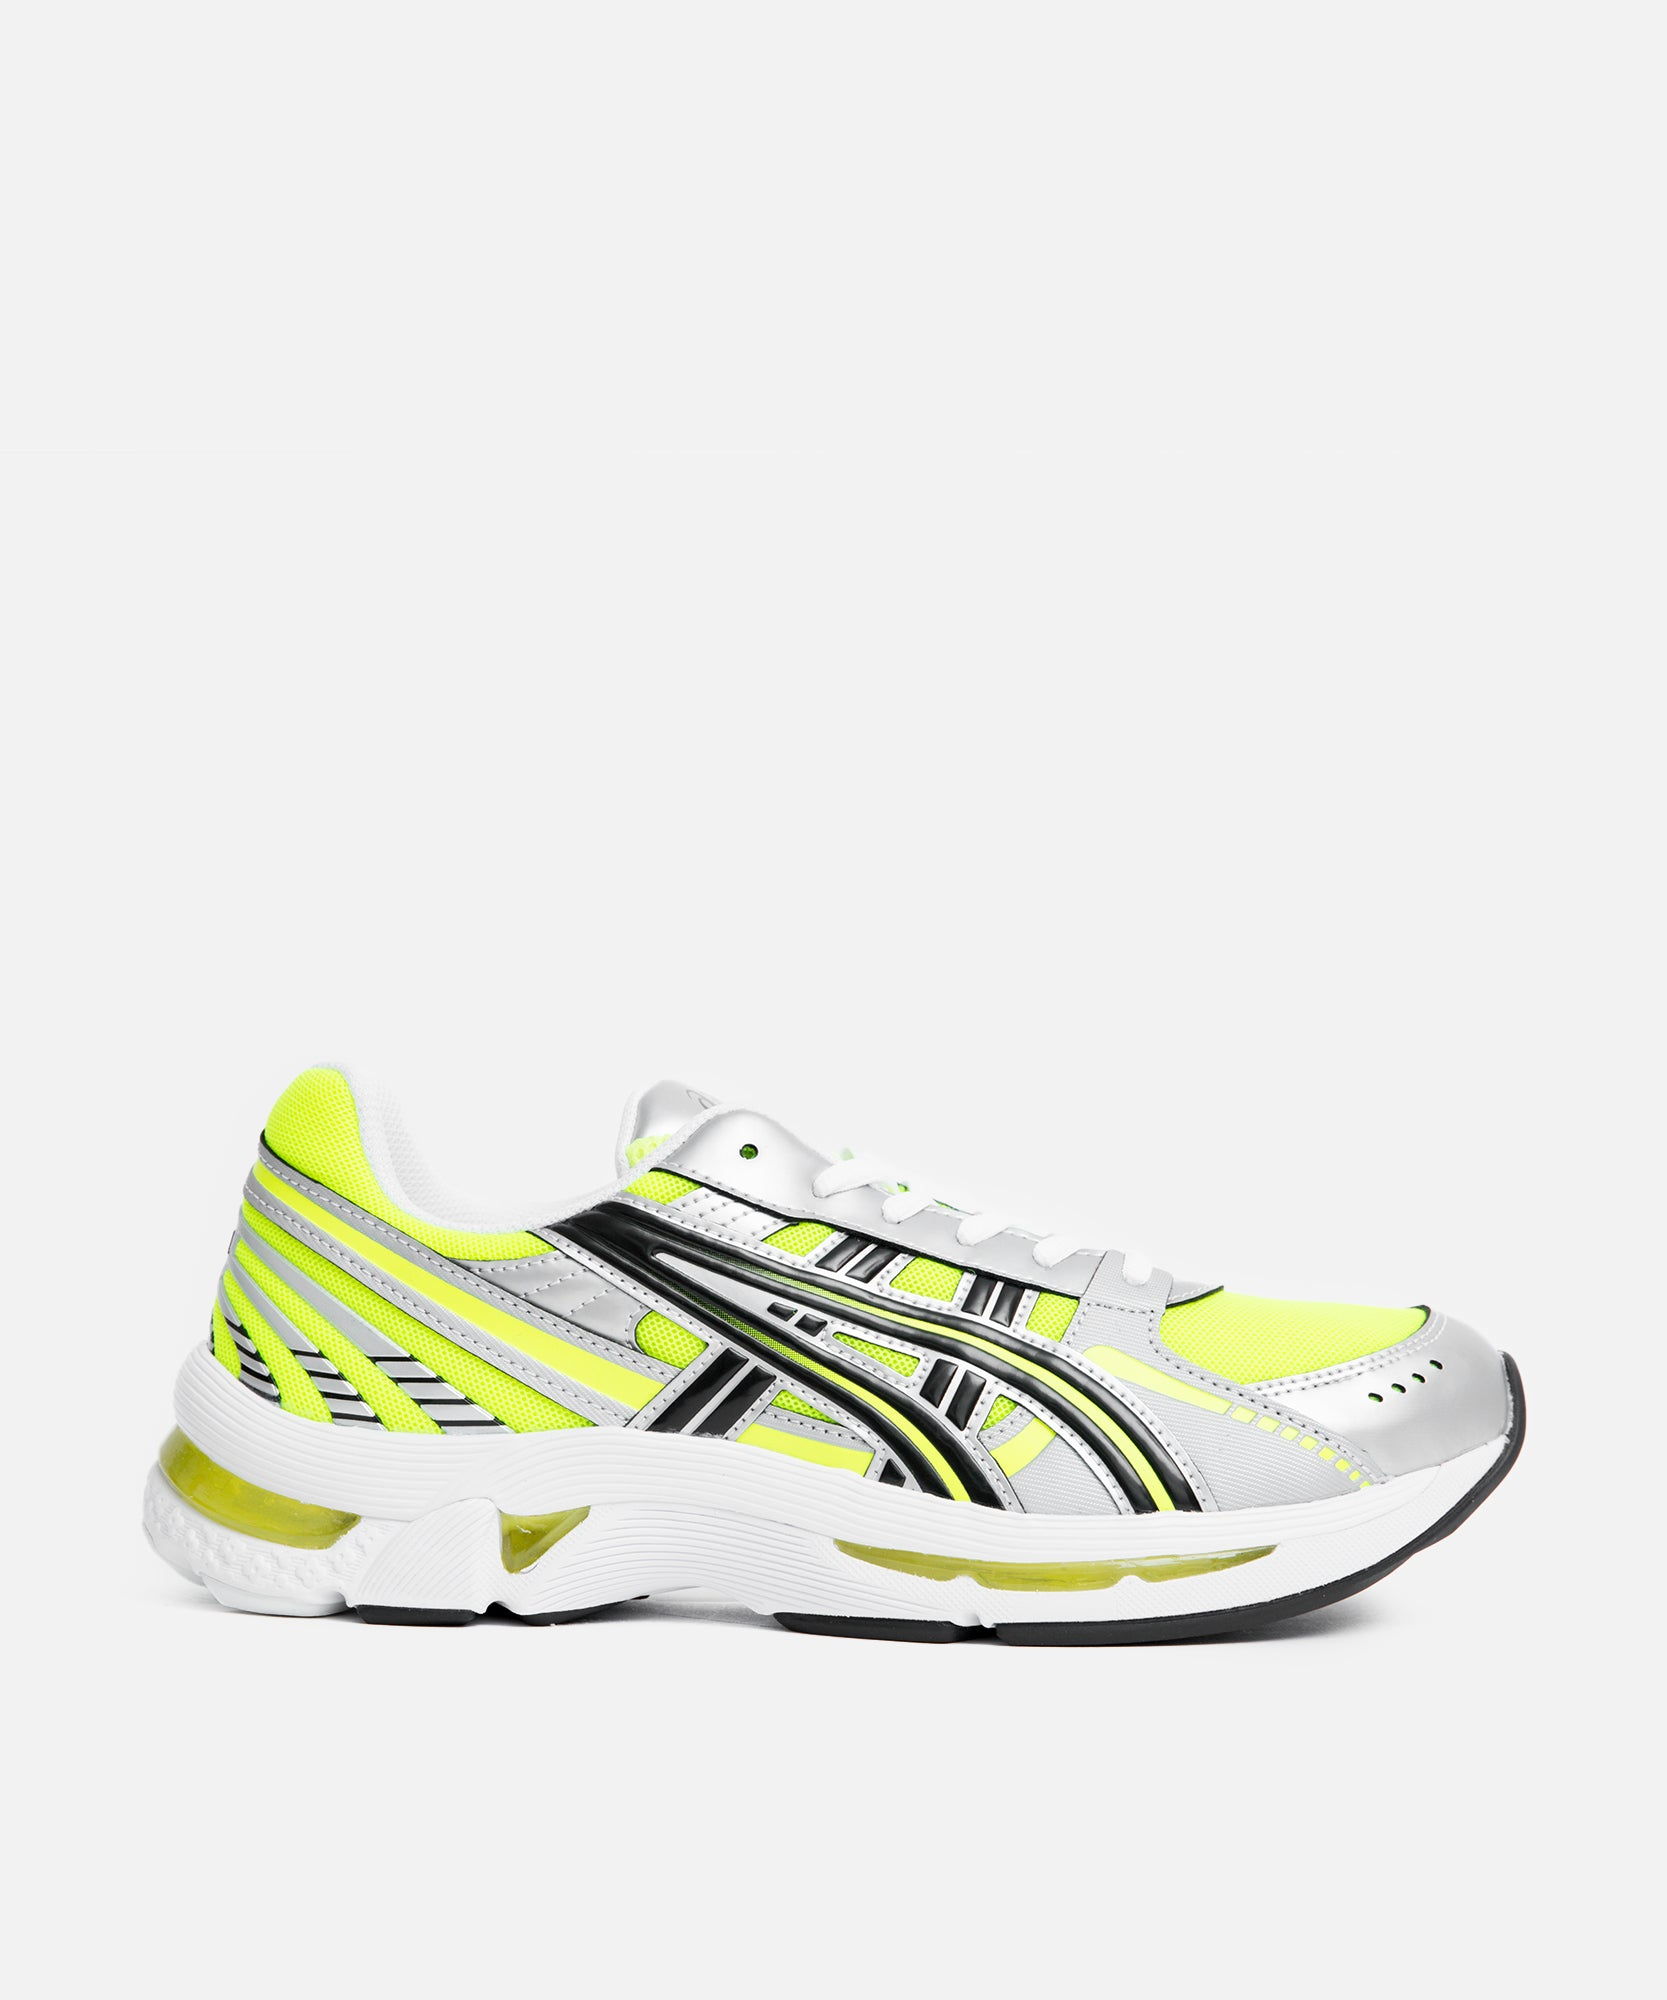 ASICS Gel-Kyrios (Safety Yellow/Black)